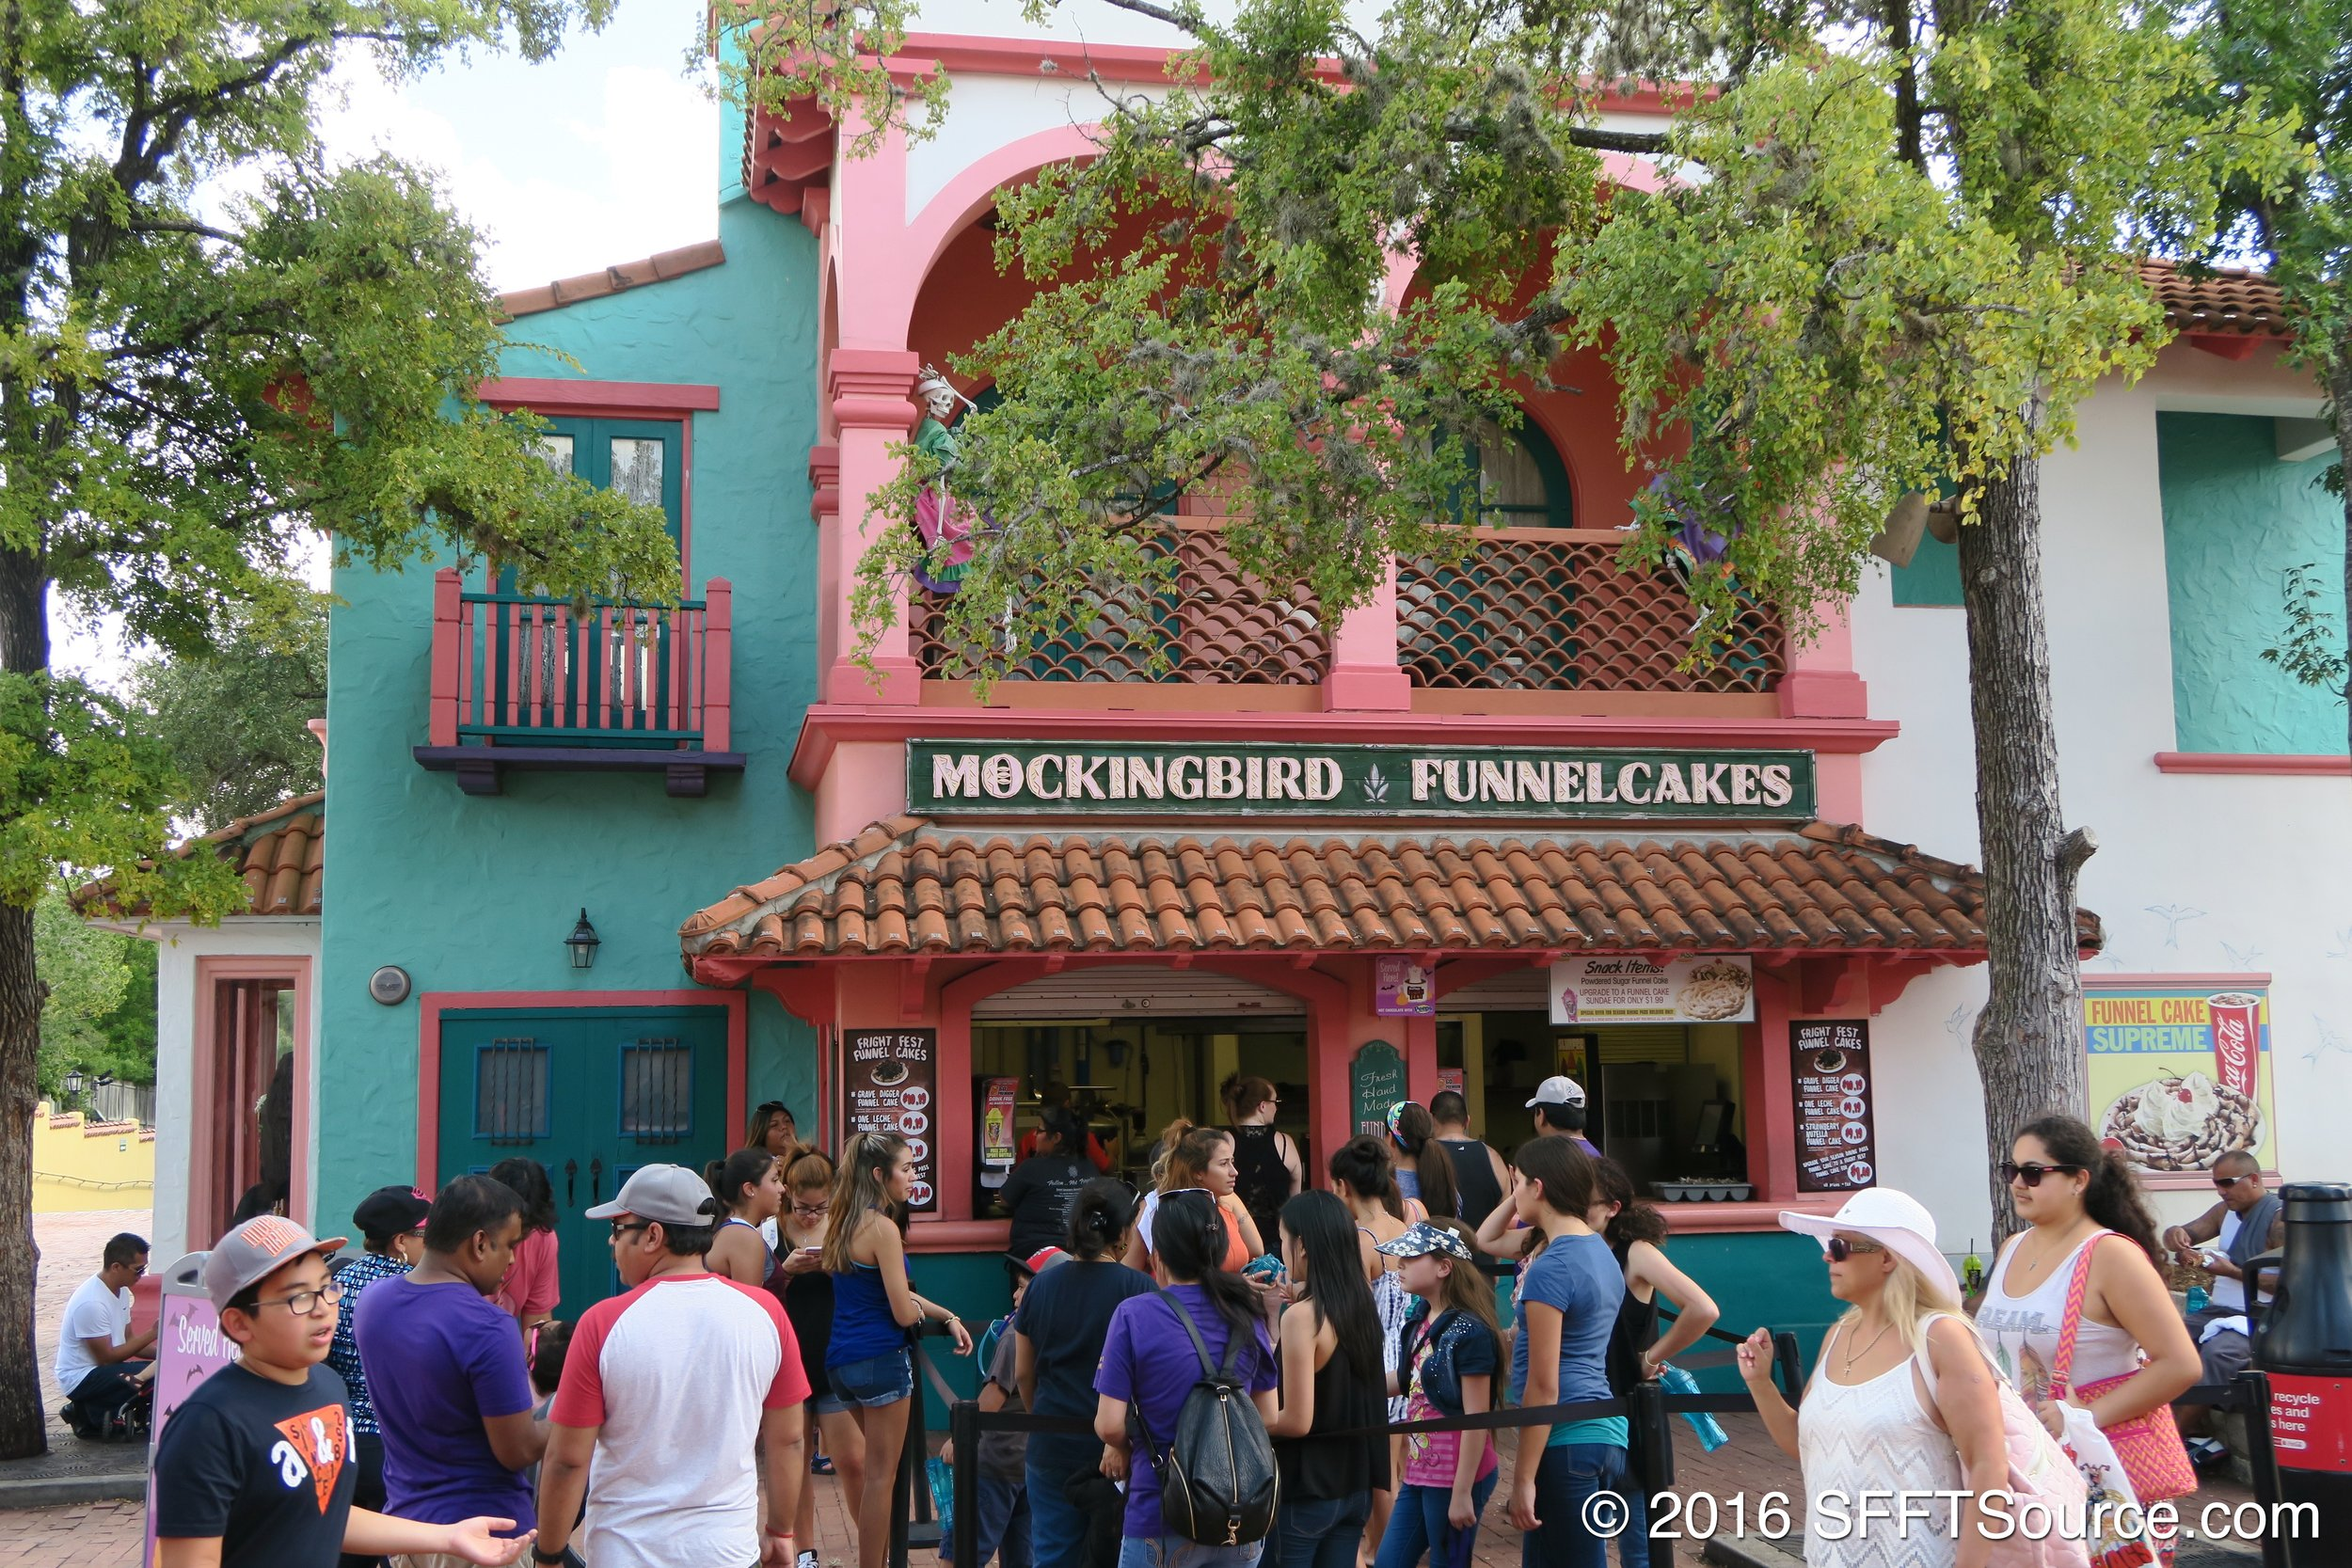 Mockingbird Funnel Cakes is an outdoor funnel cake stand.